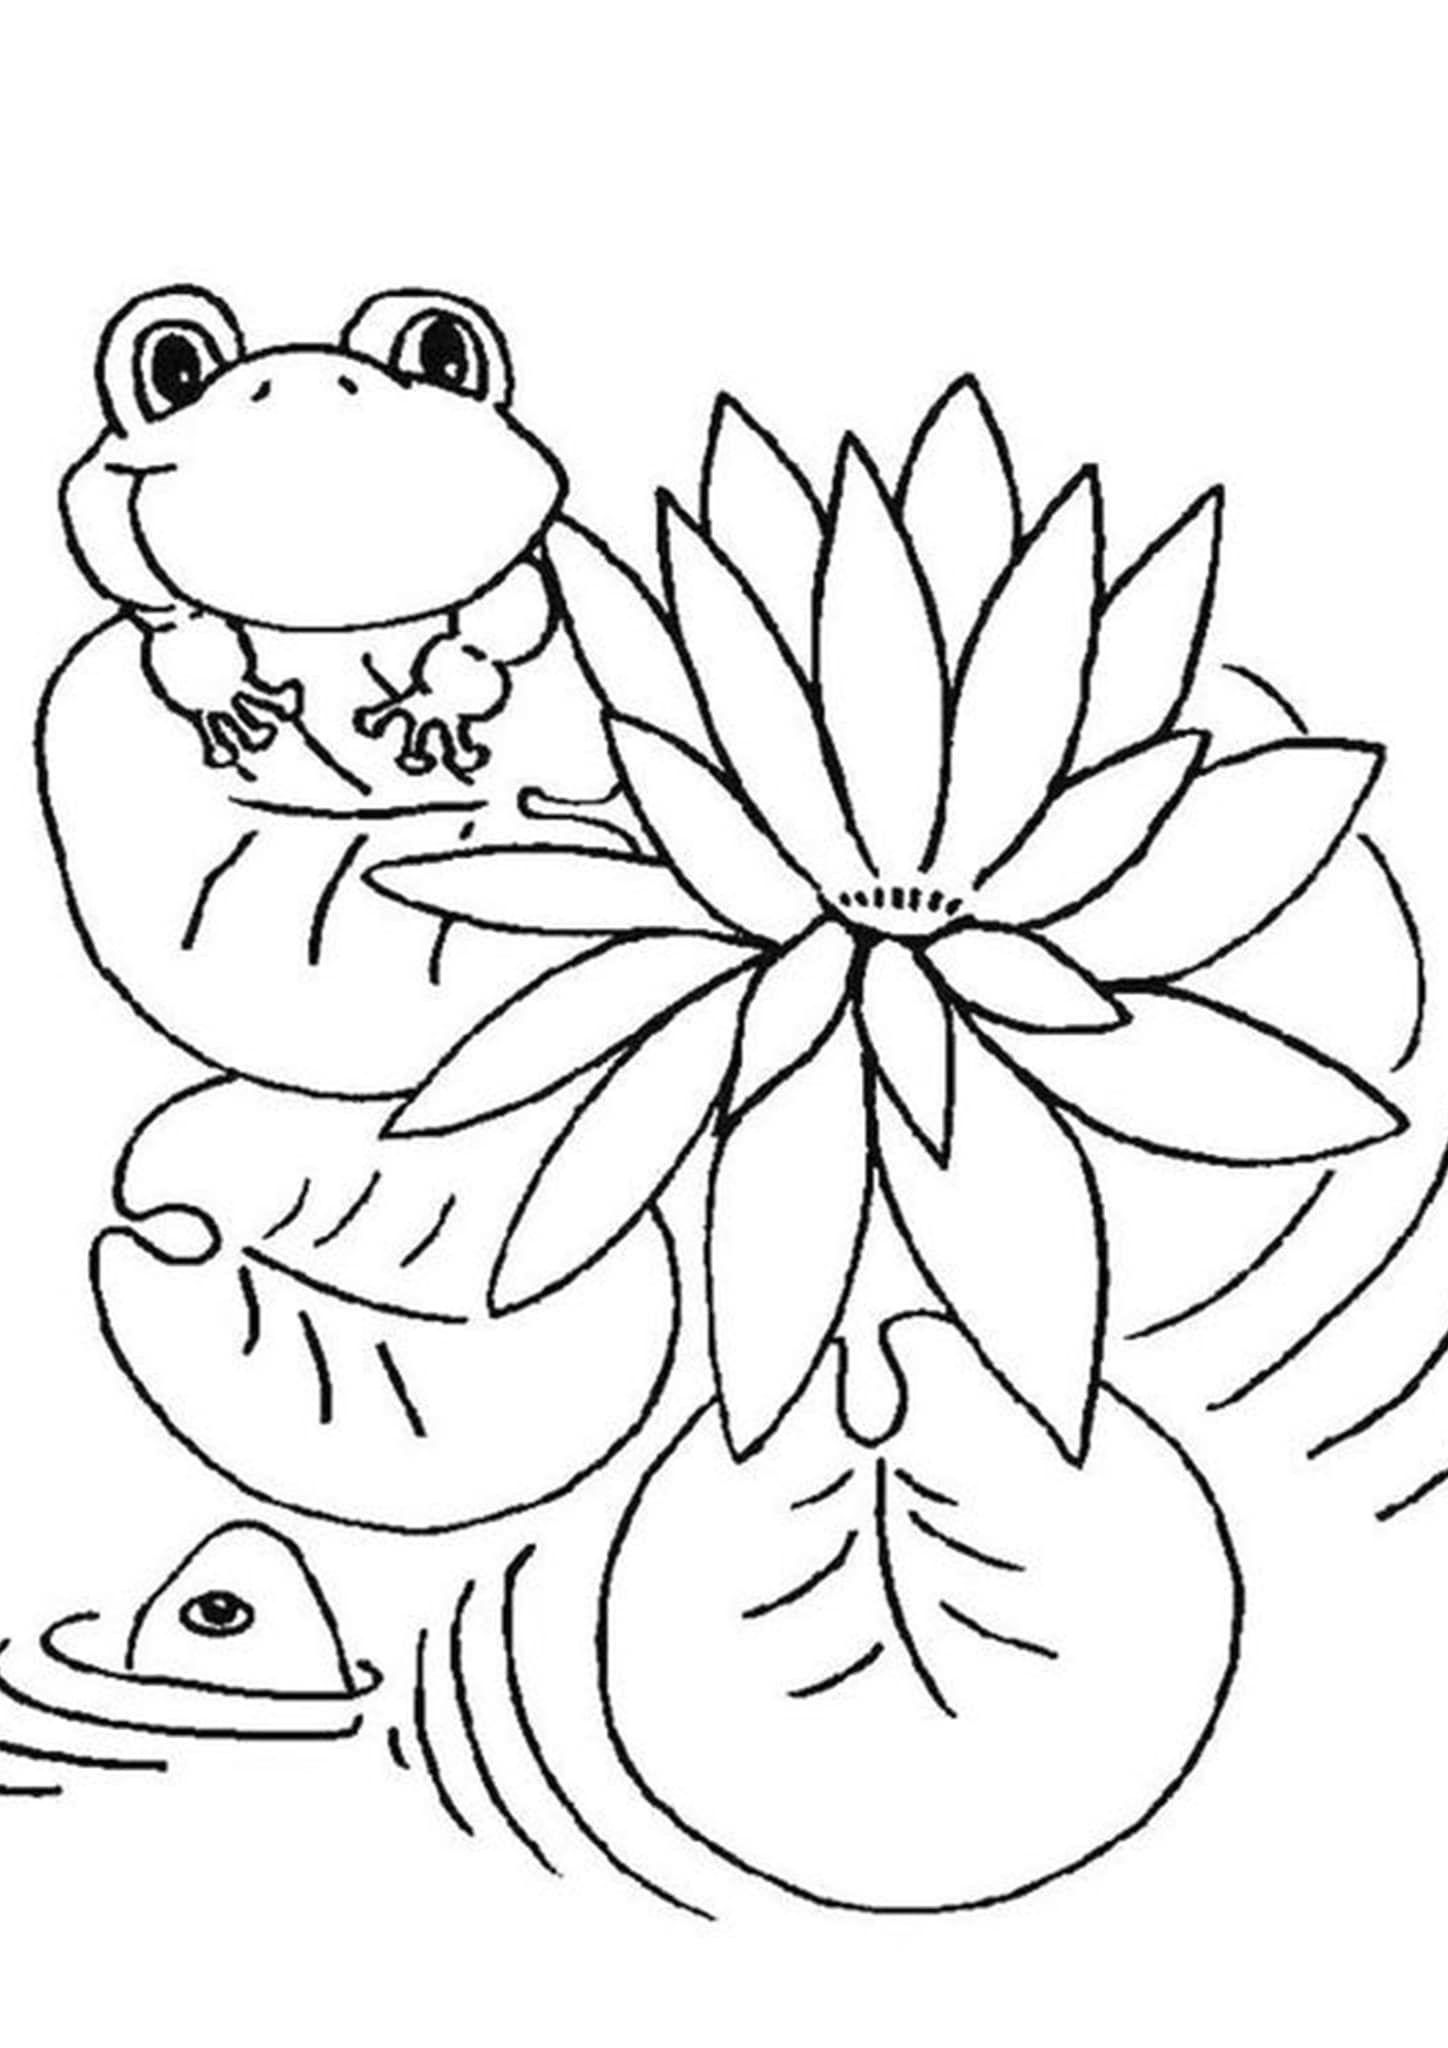 Free Easy To Print Frog Coloring Pages Frog Coloring Pages Dinosaur Coloring Pages Animal Coloring Pages [ 2048 x 1448 Pixel ]